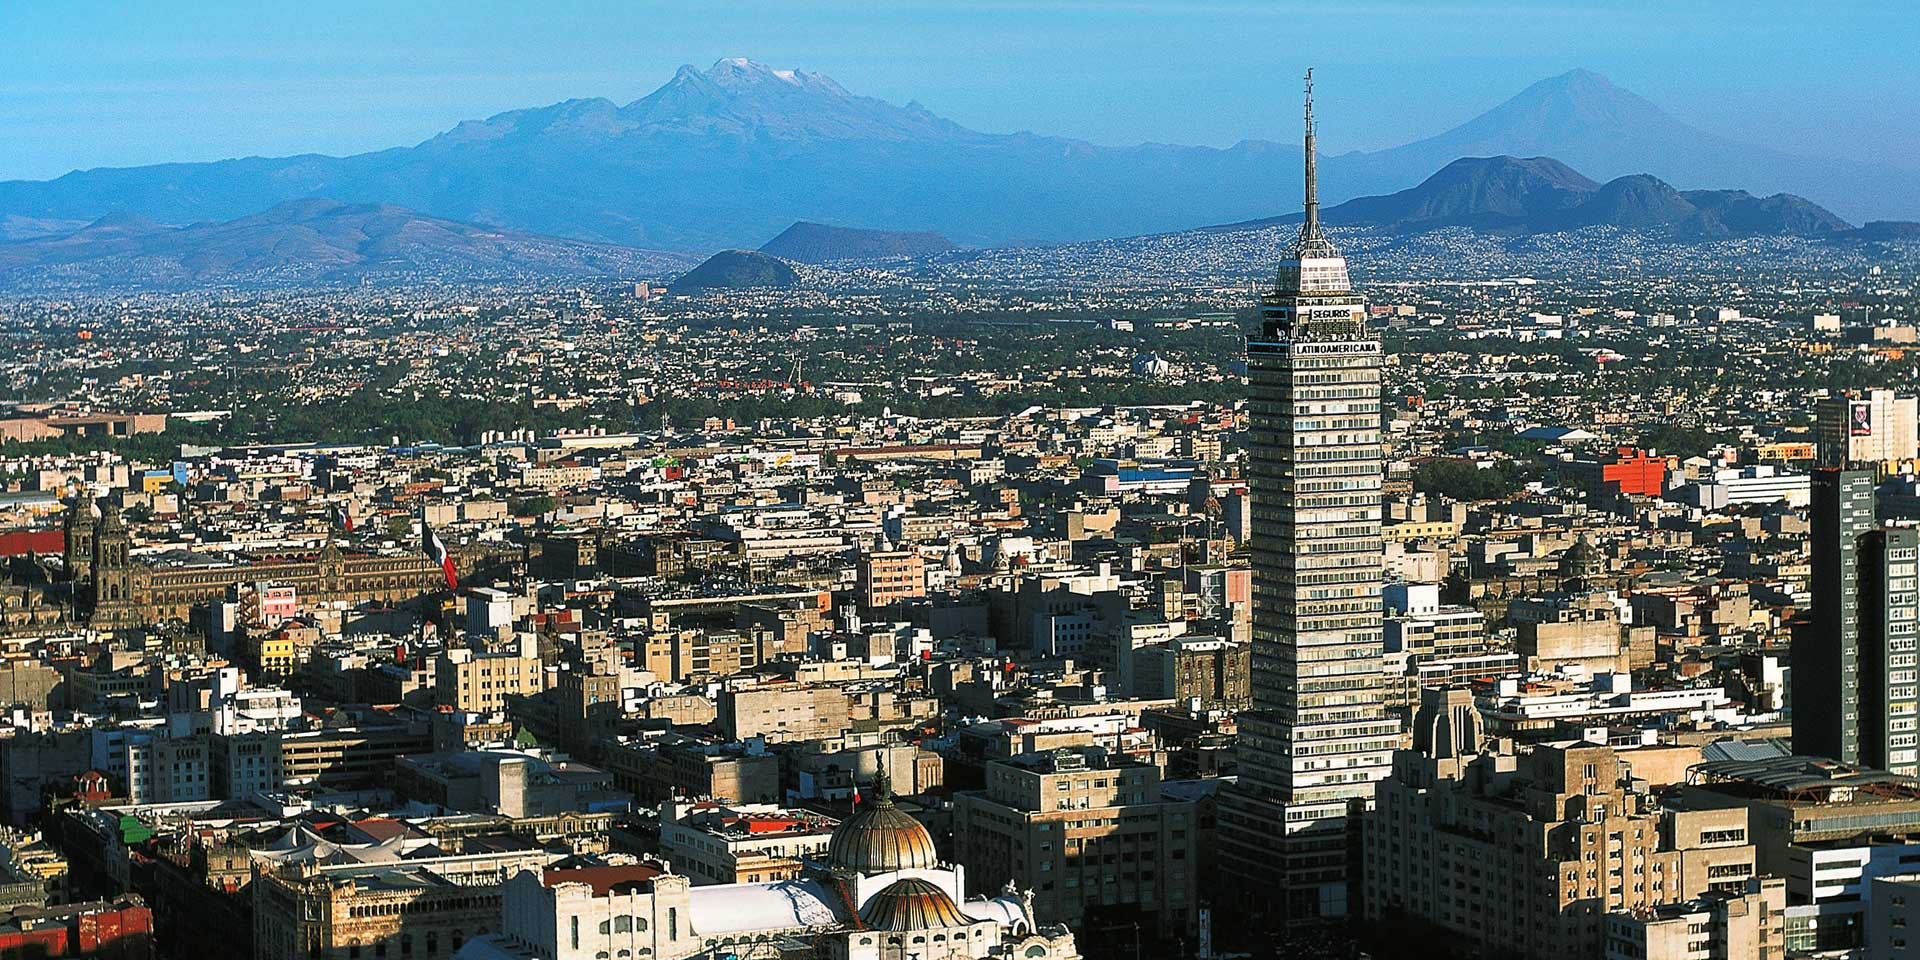 Mexico City Mexico  City new picture : Mexico City | White & Case LLP International Law Firm, Global Law ...